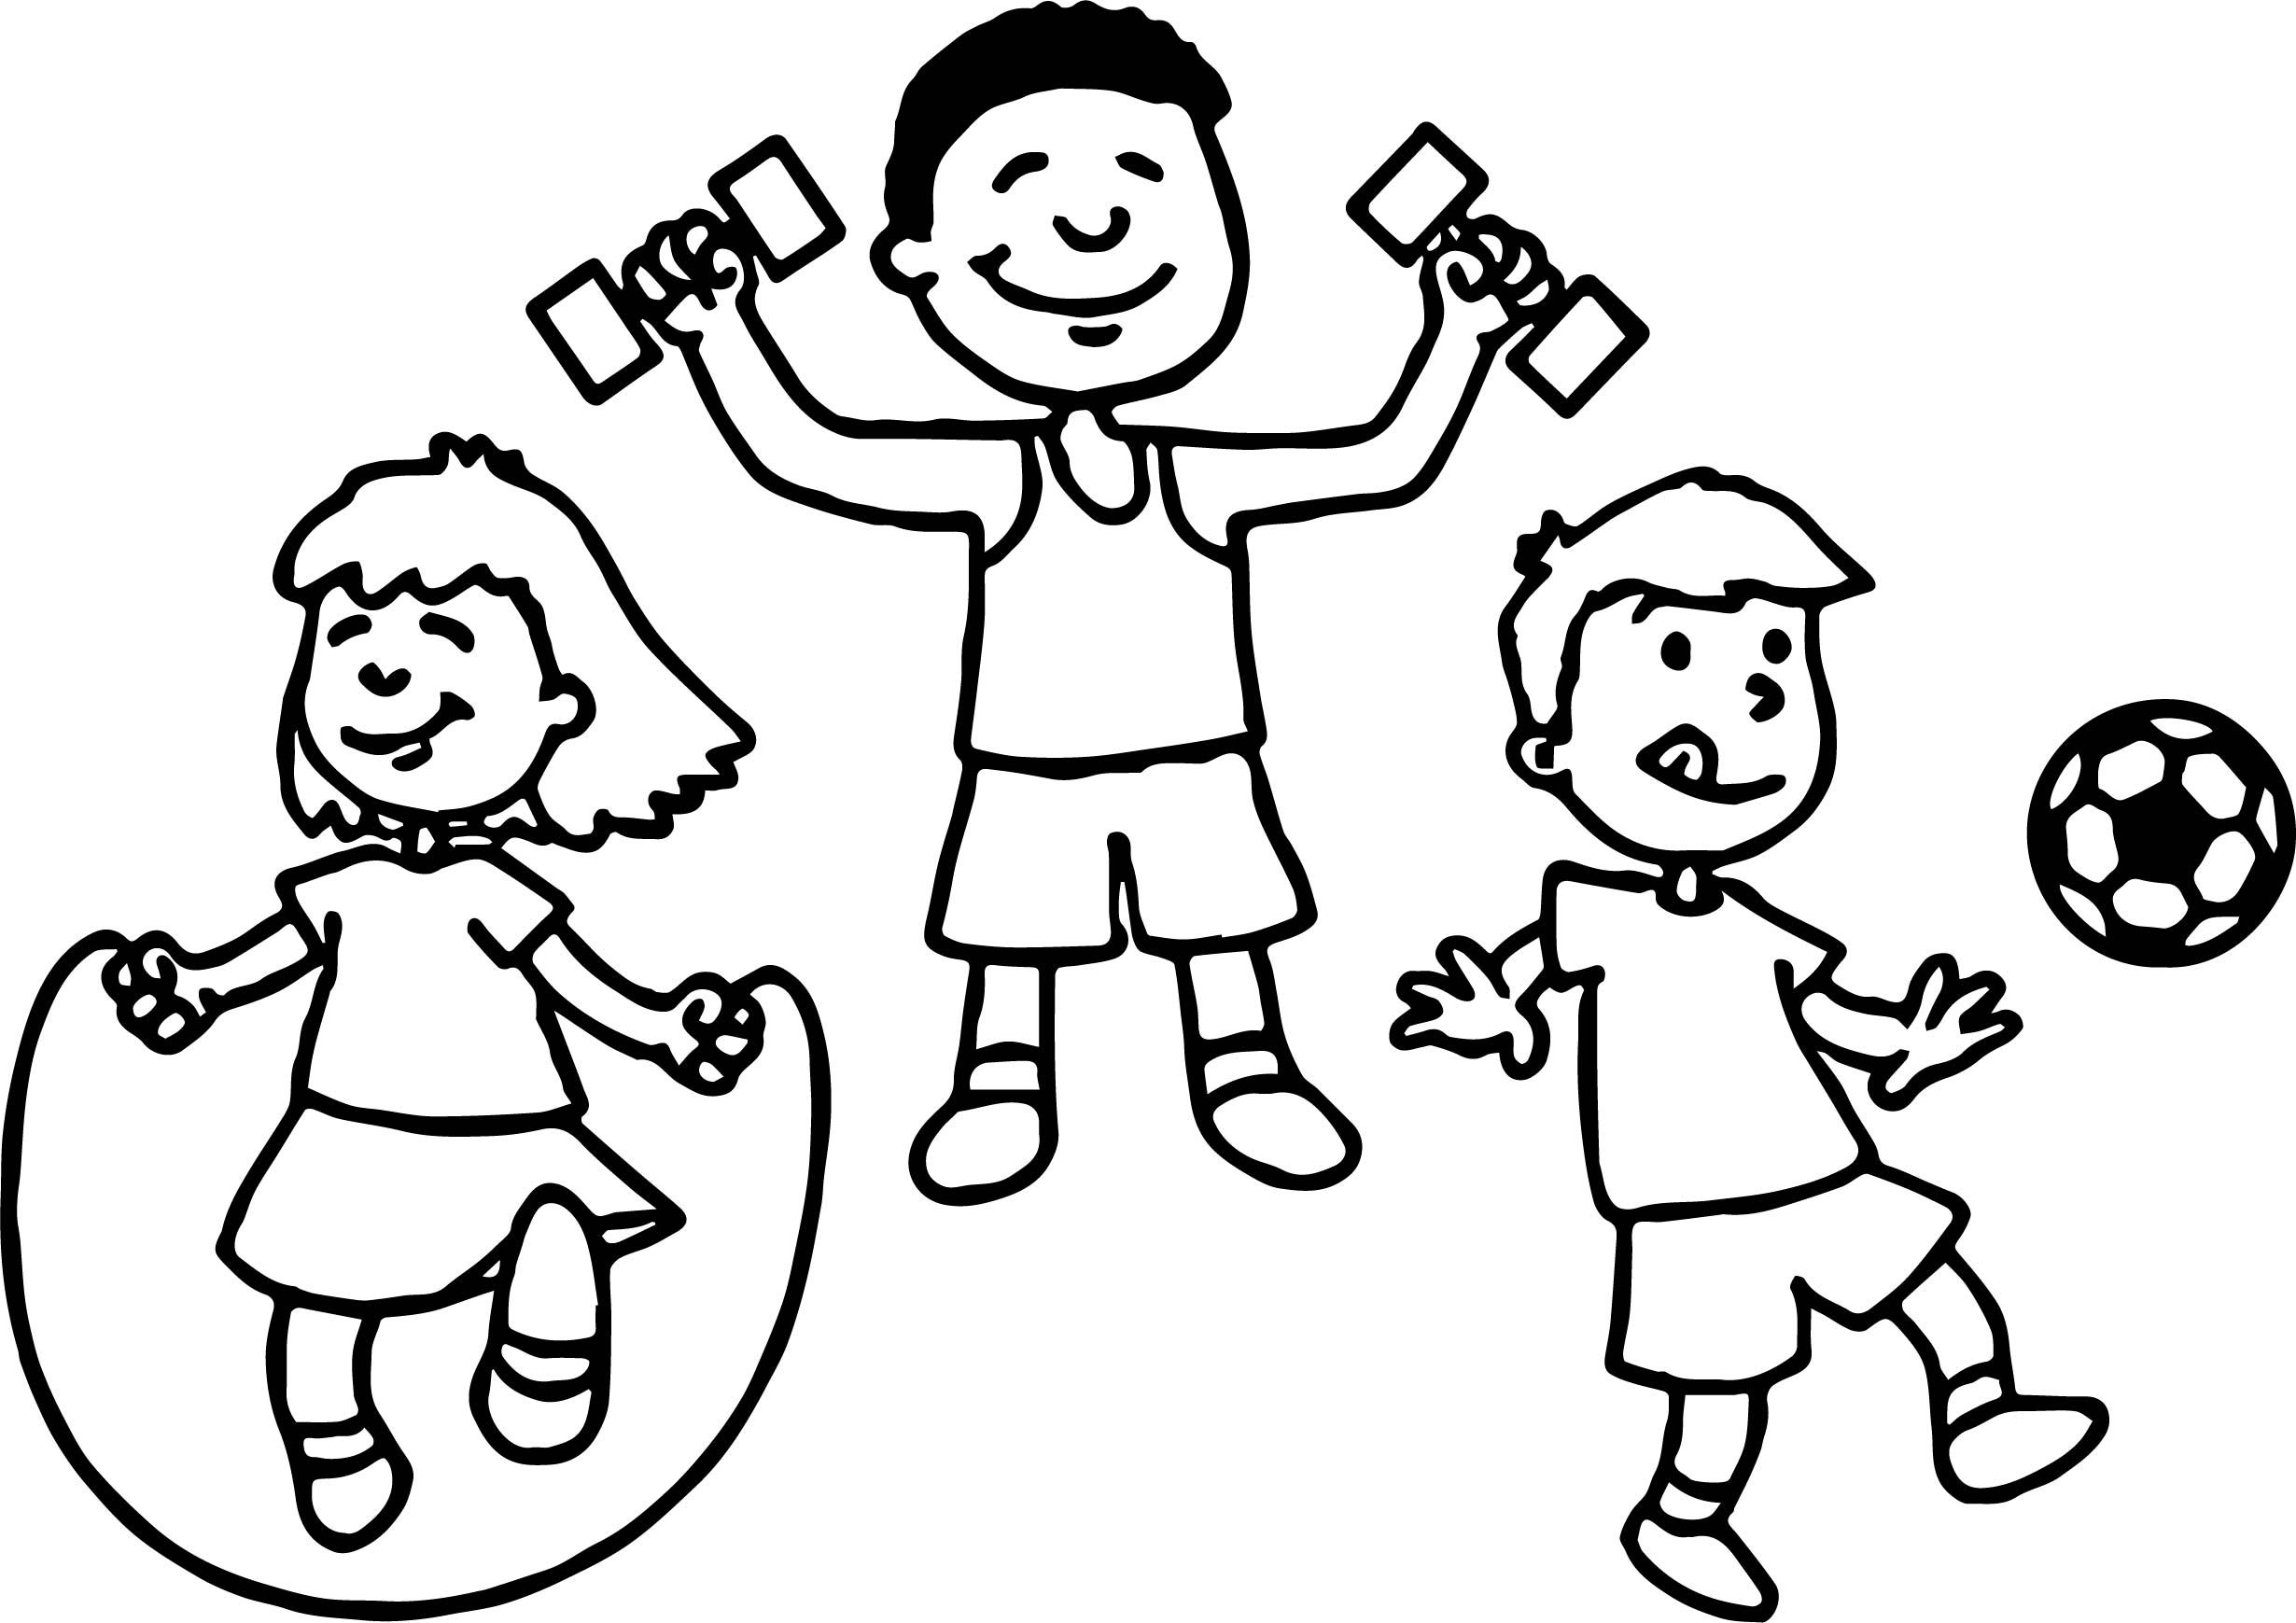 Awesome May Sports Coloring Page